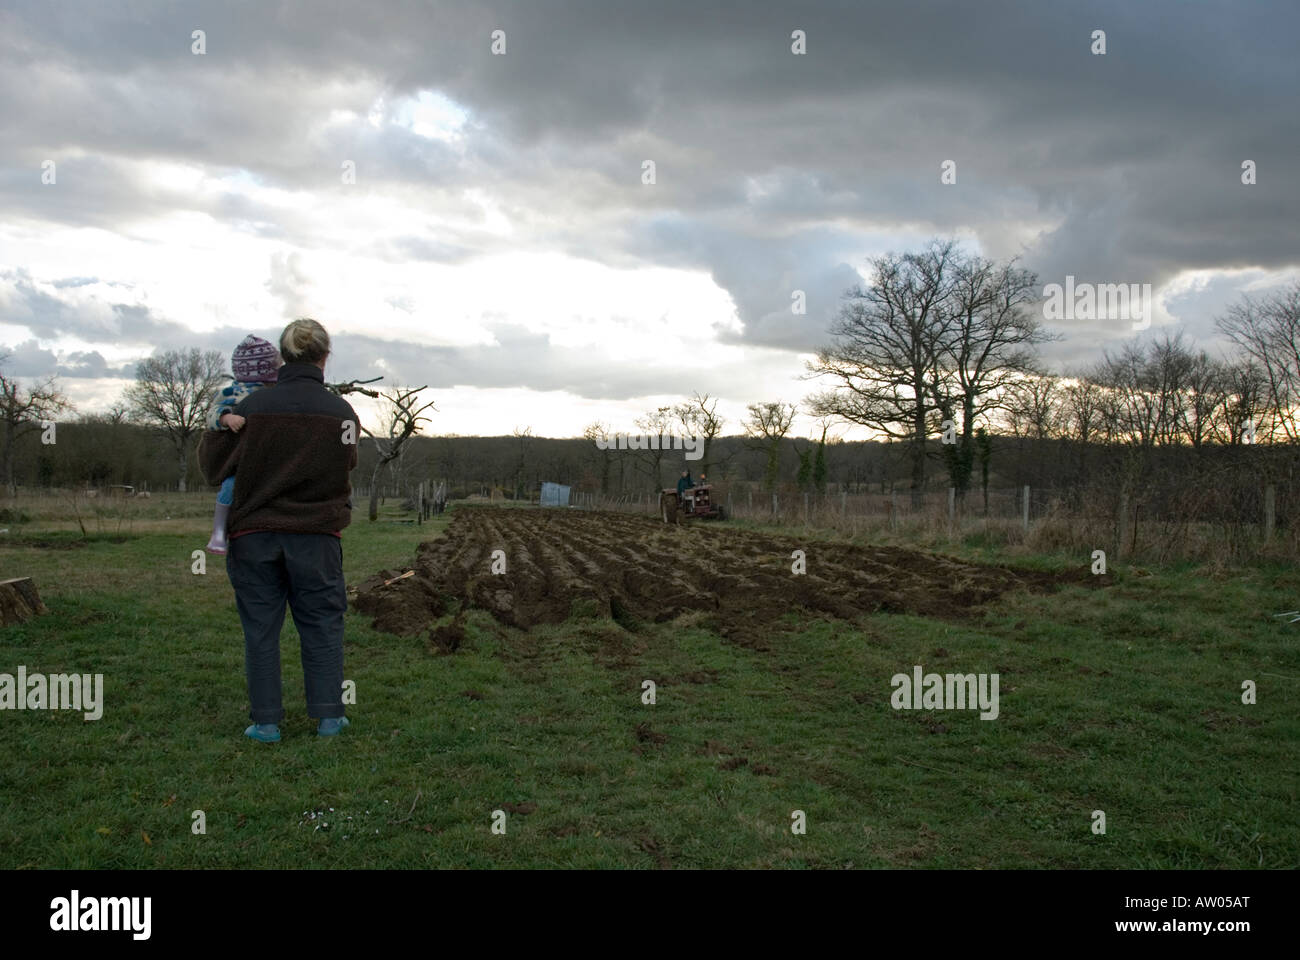 Stock photo of a mum holding her daughter watching their smallholding being ploughed - Stock Image